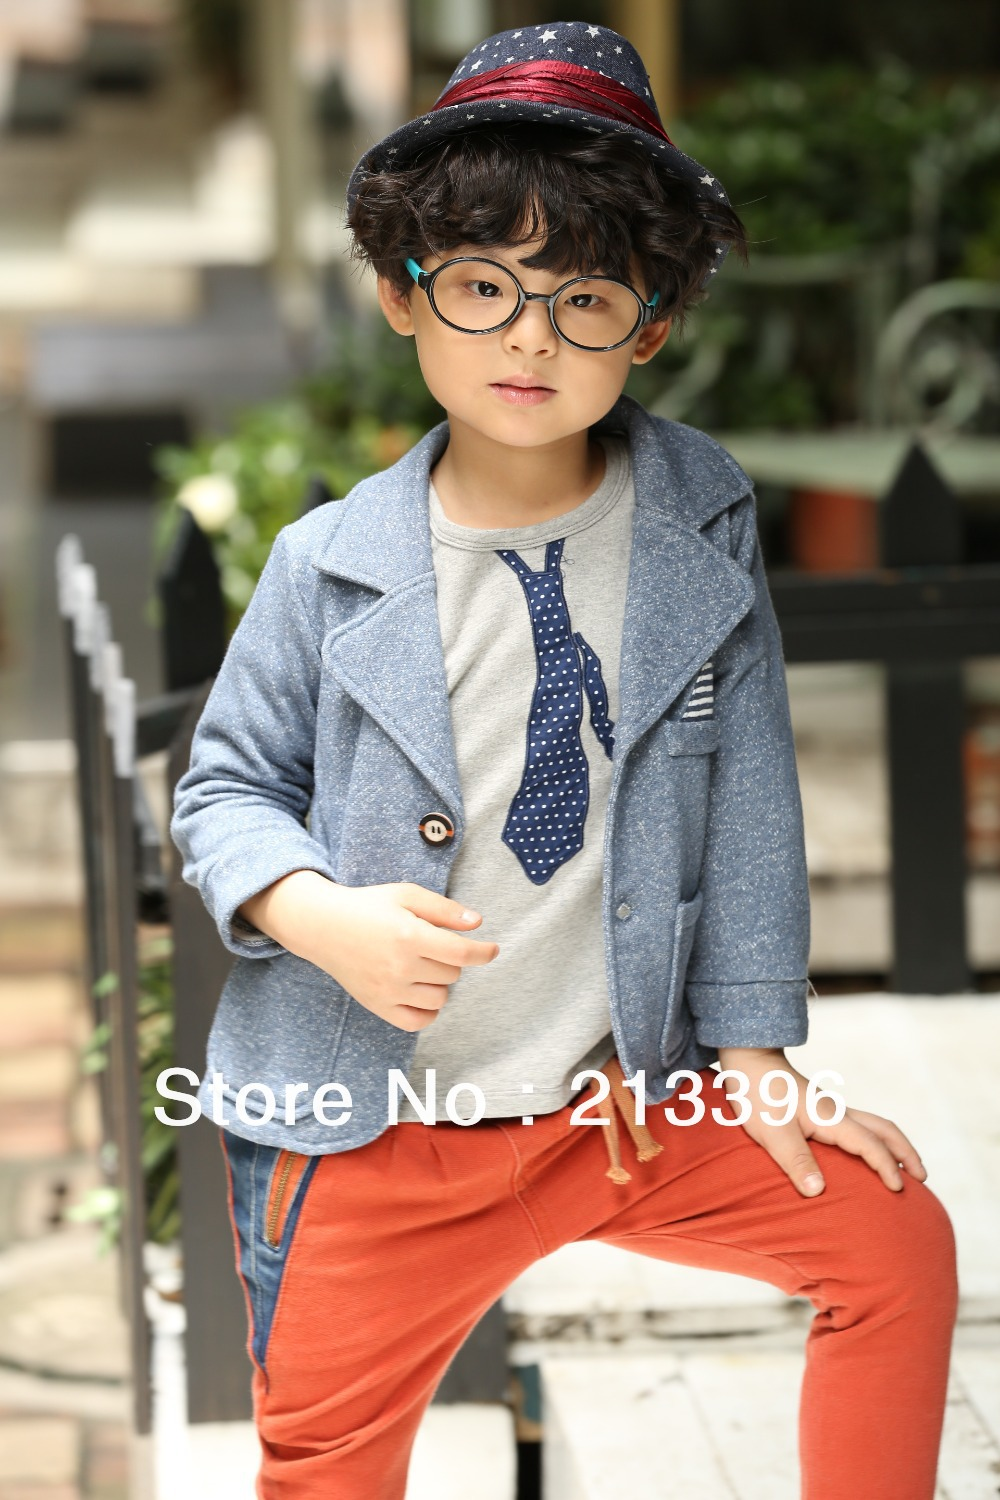 new arrival !high quality ! formal fashion suit for cute kids boy